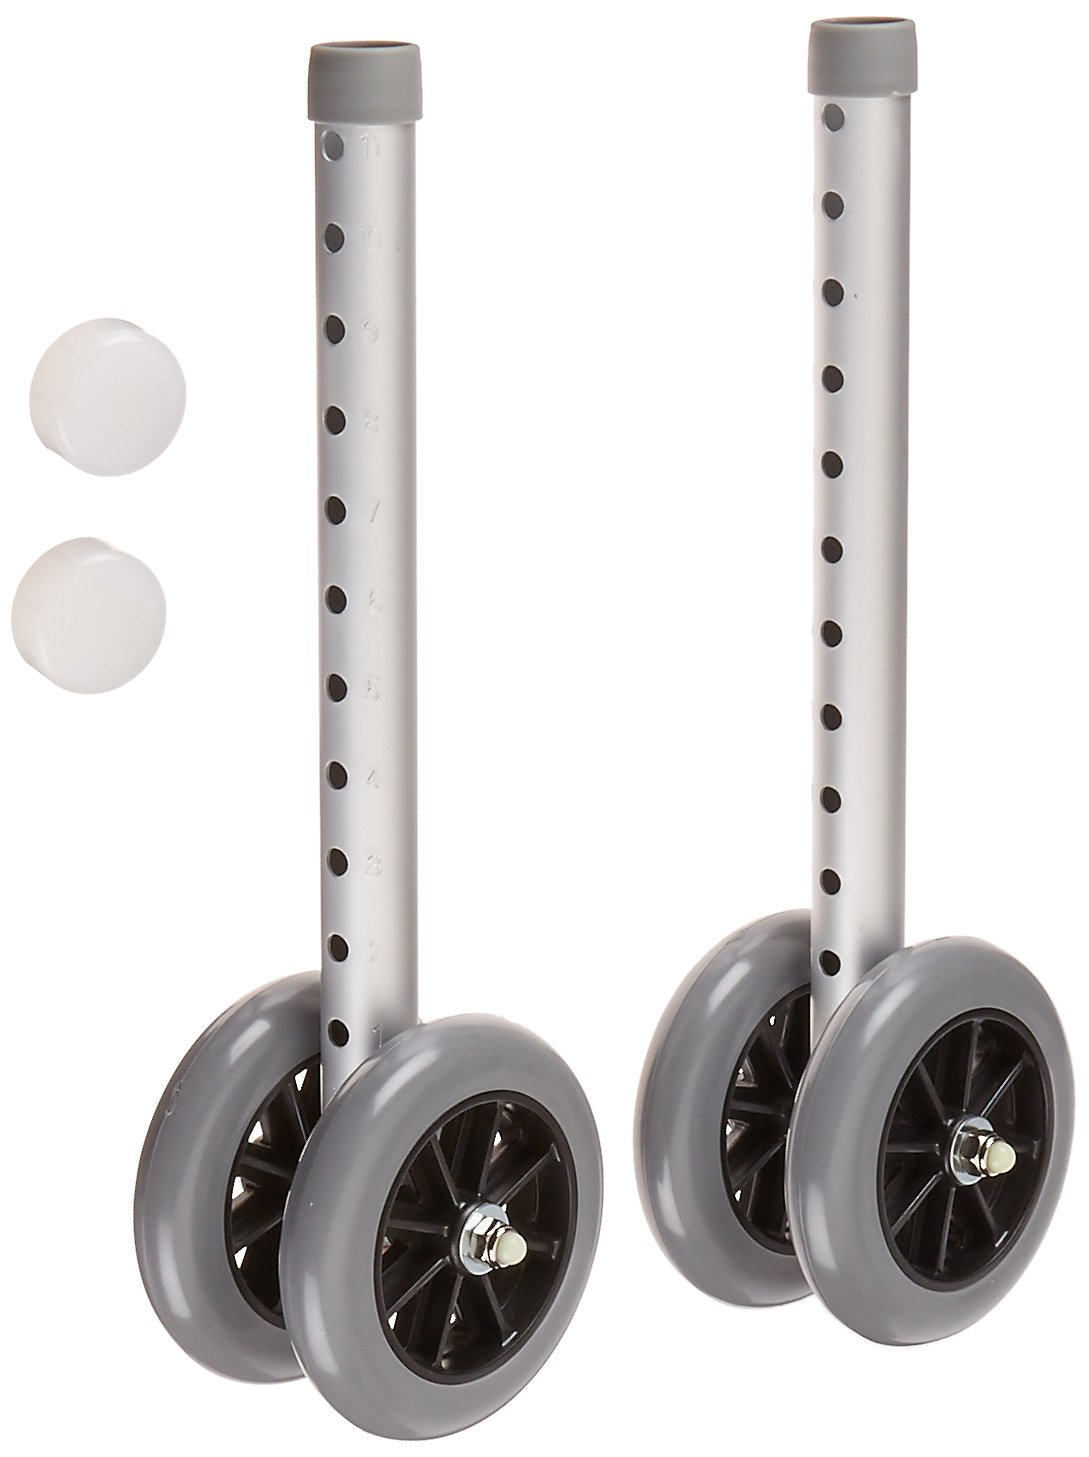 Days Double 5'' Wide Wheels and Glide Caps for Bariatric Adjustable Walker, Rollator Wheels for Elderly and Handicapped, Heavy Duty and Smooth Glide Wheel Attachments for Bariatric Walkers